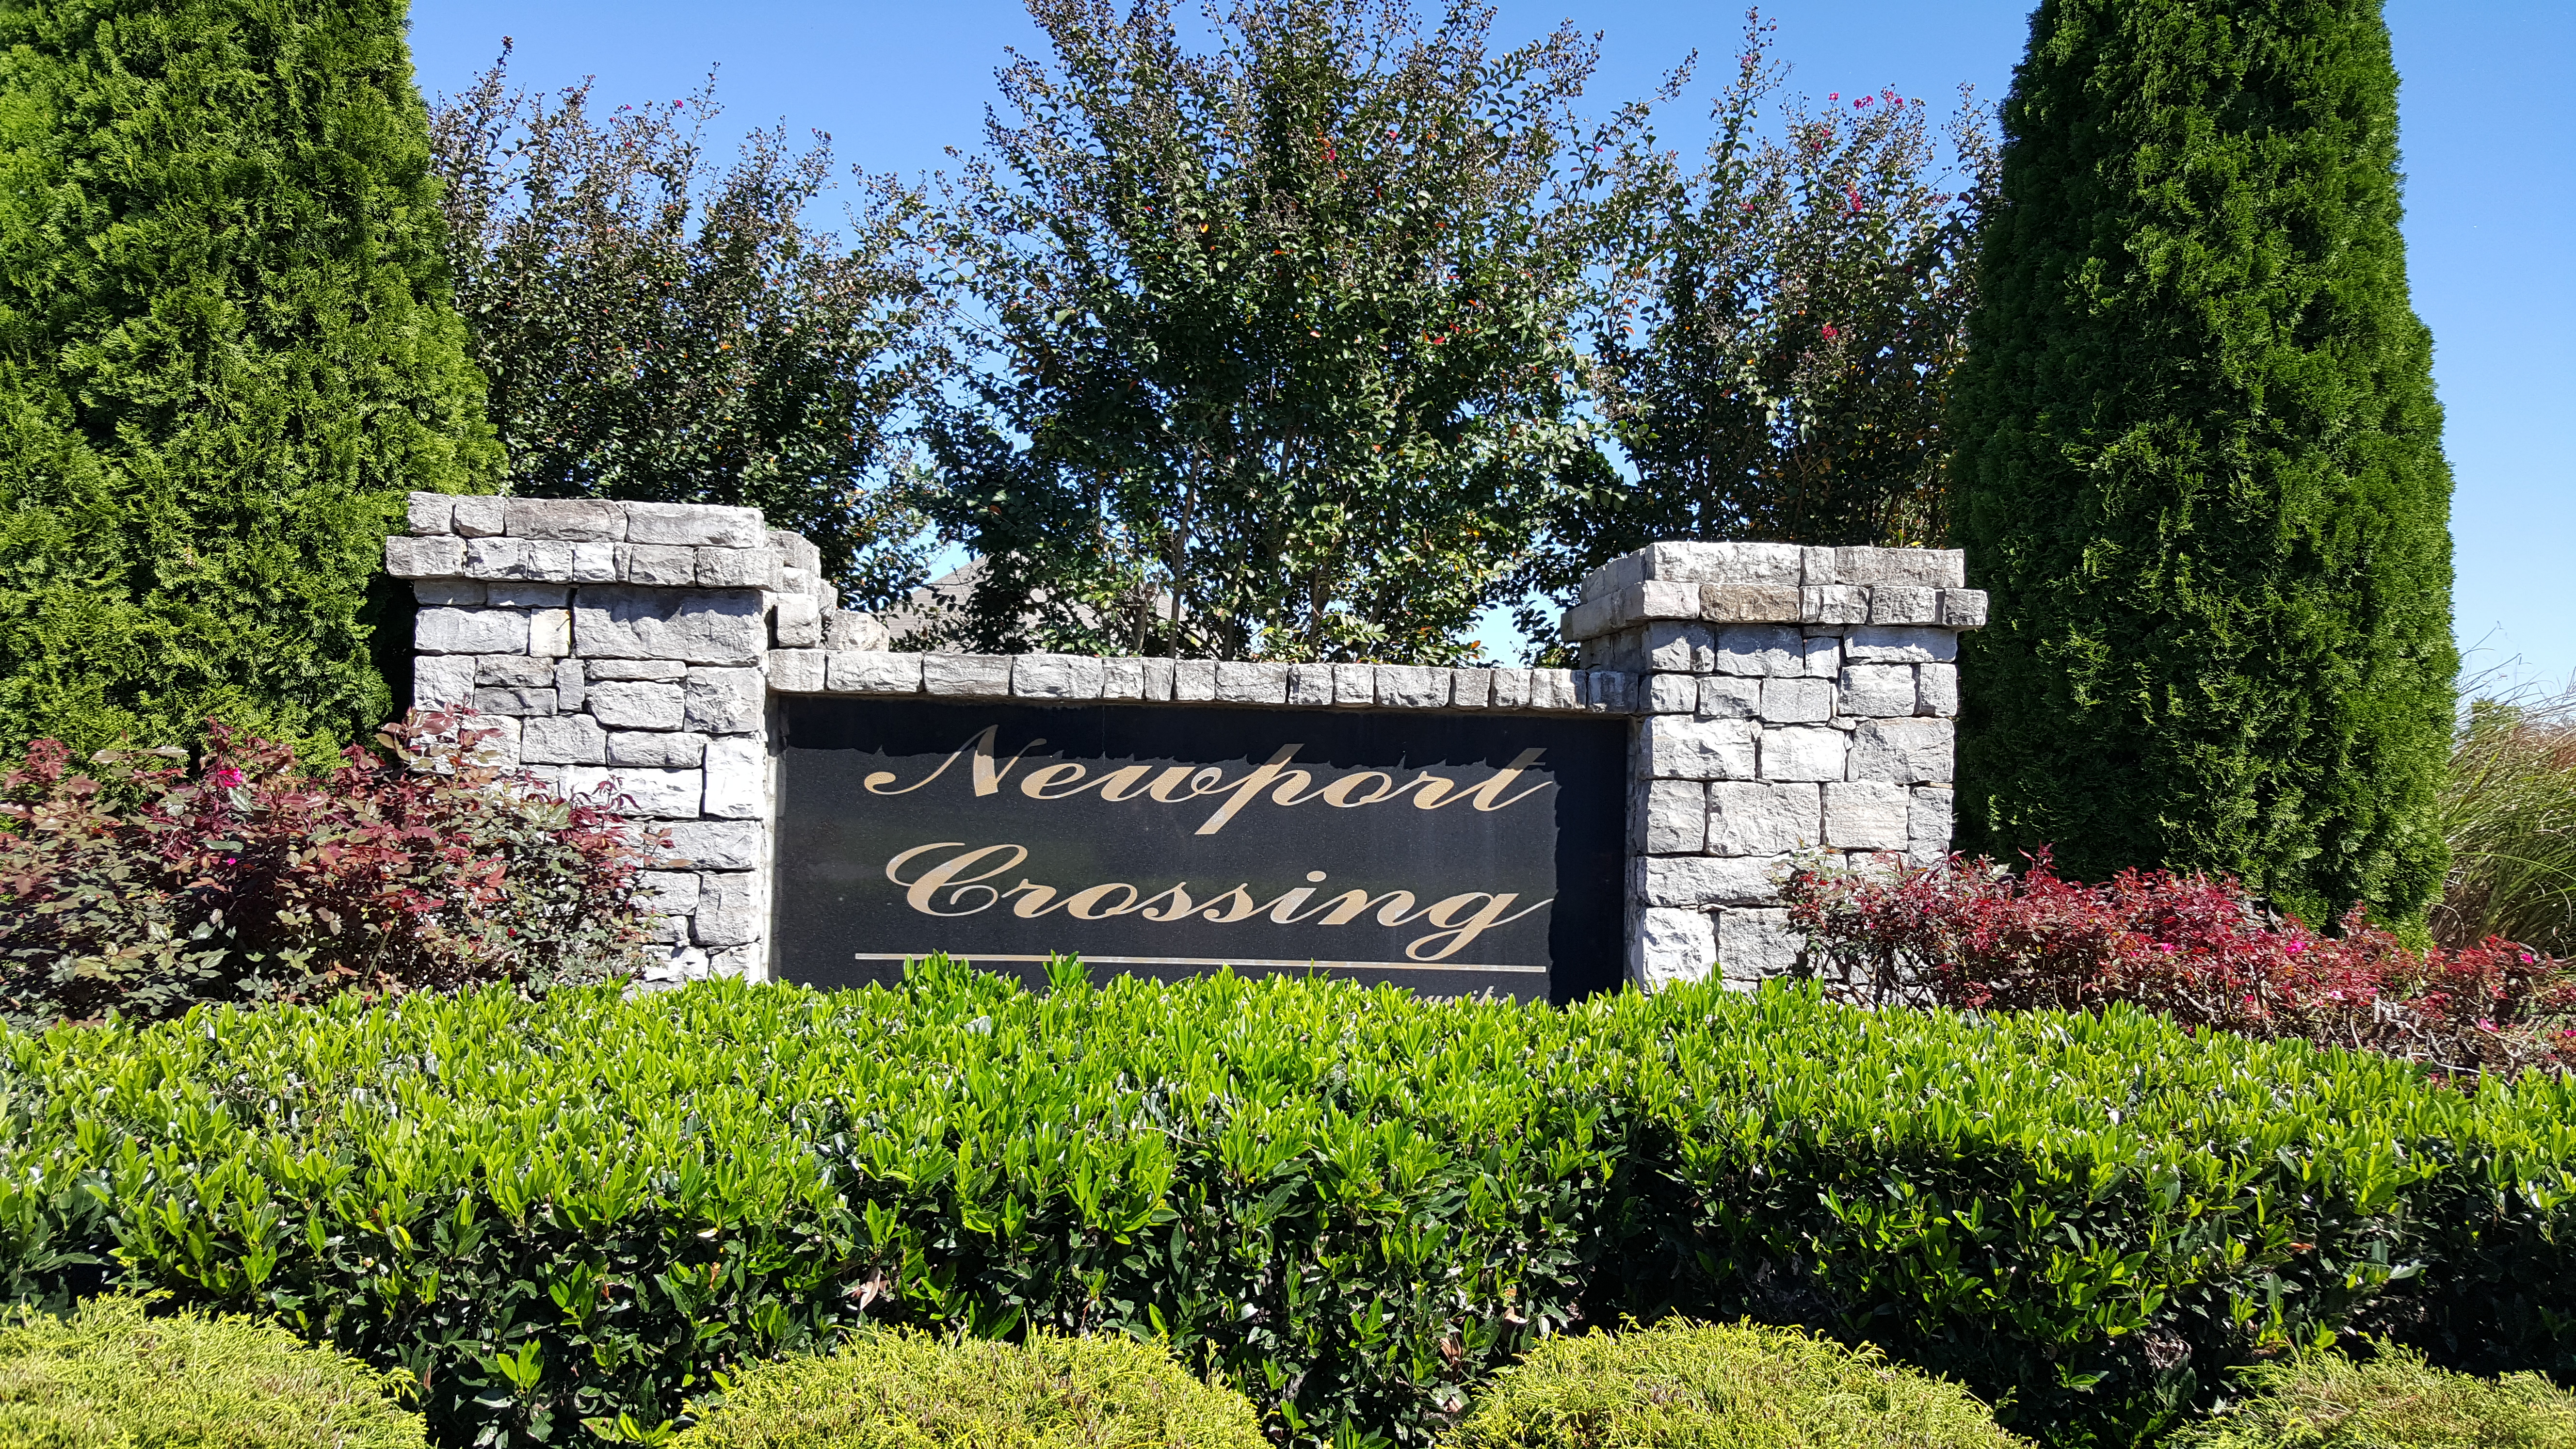 Newport Crossing subdivision in Thompson's Station homes for sale